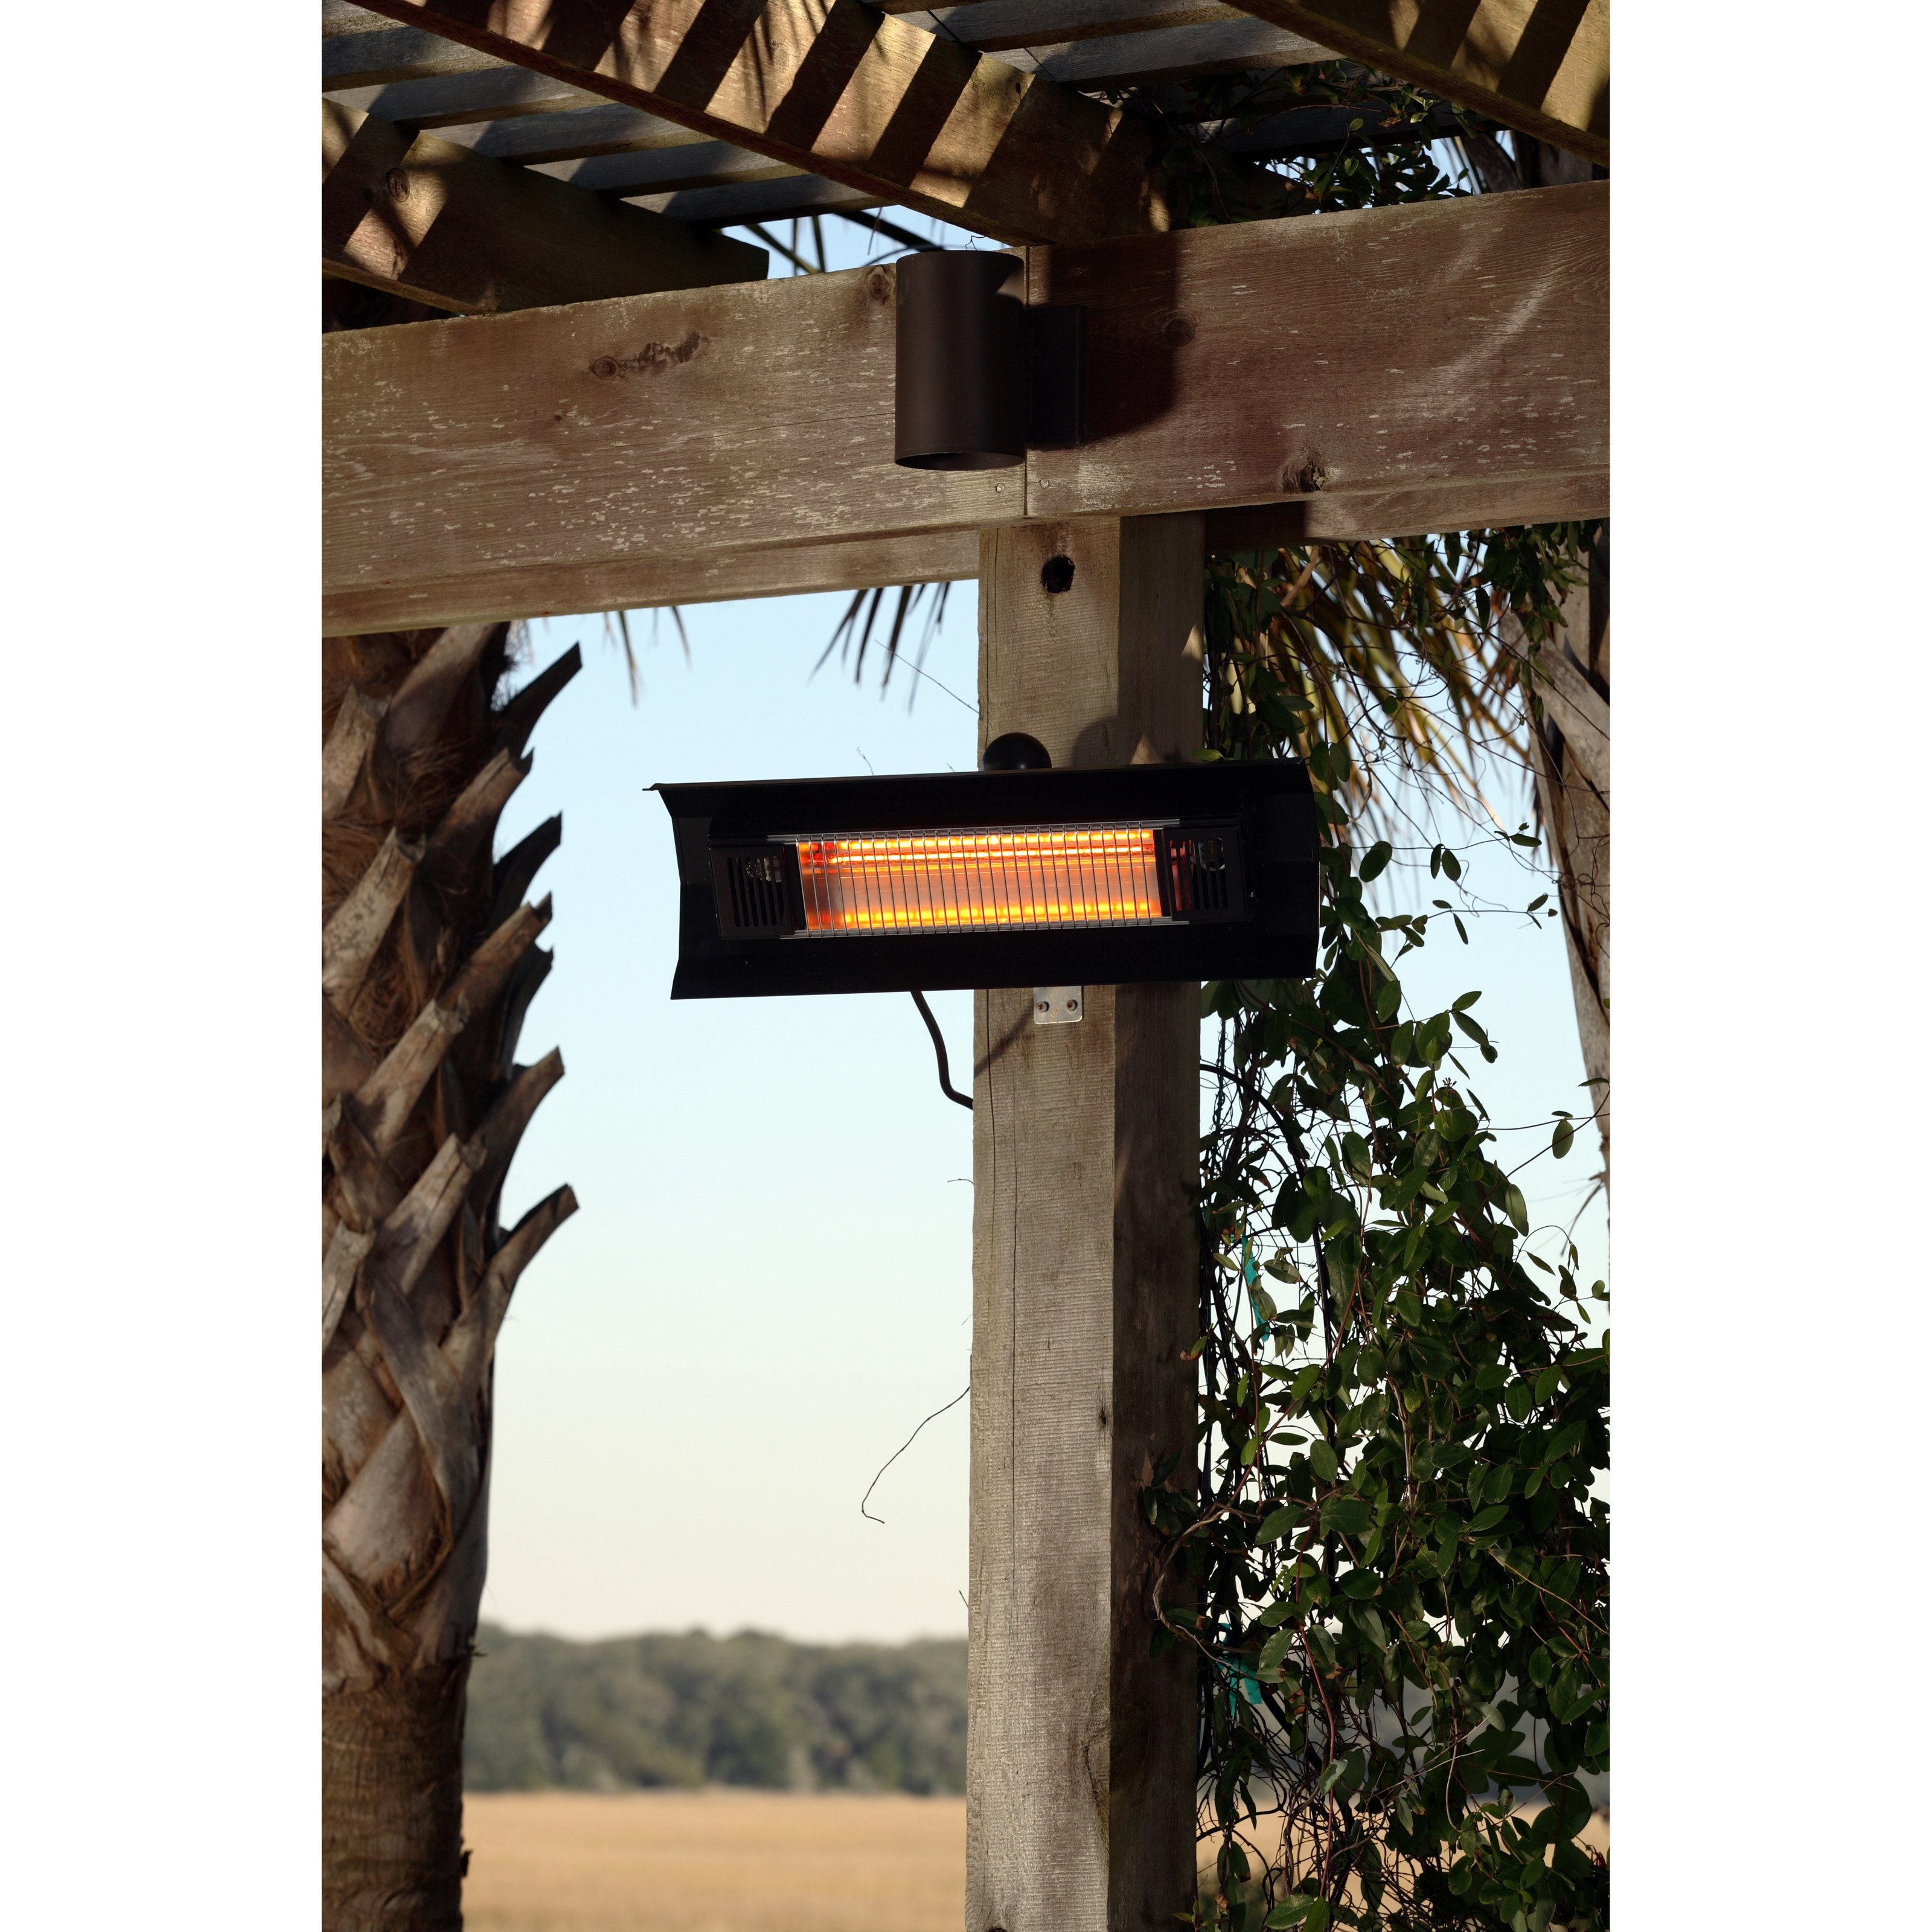 Steel Wall Mounted Infrared Patio Heater-Finish:Black